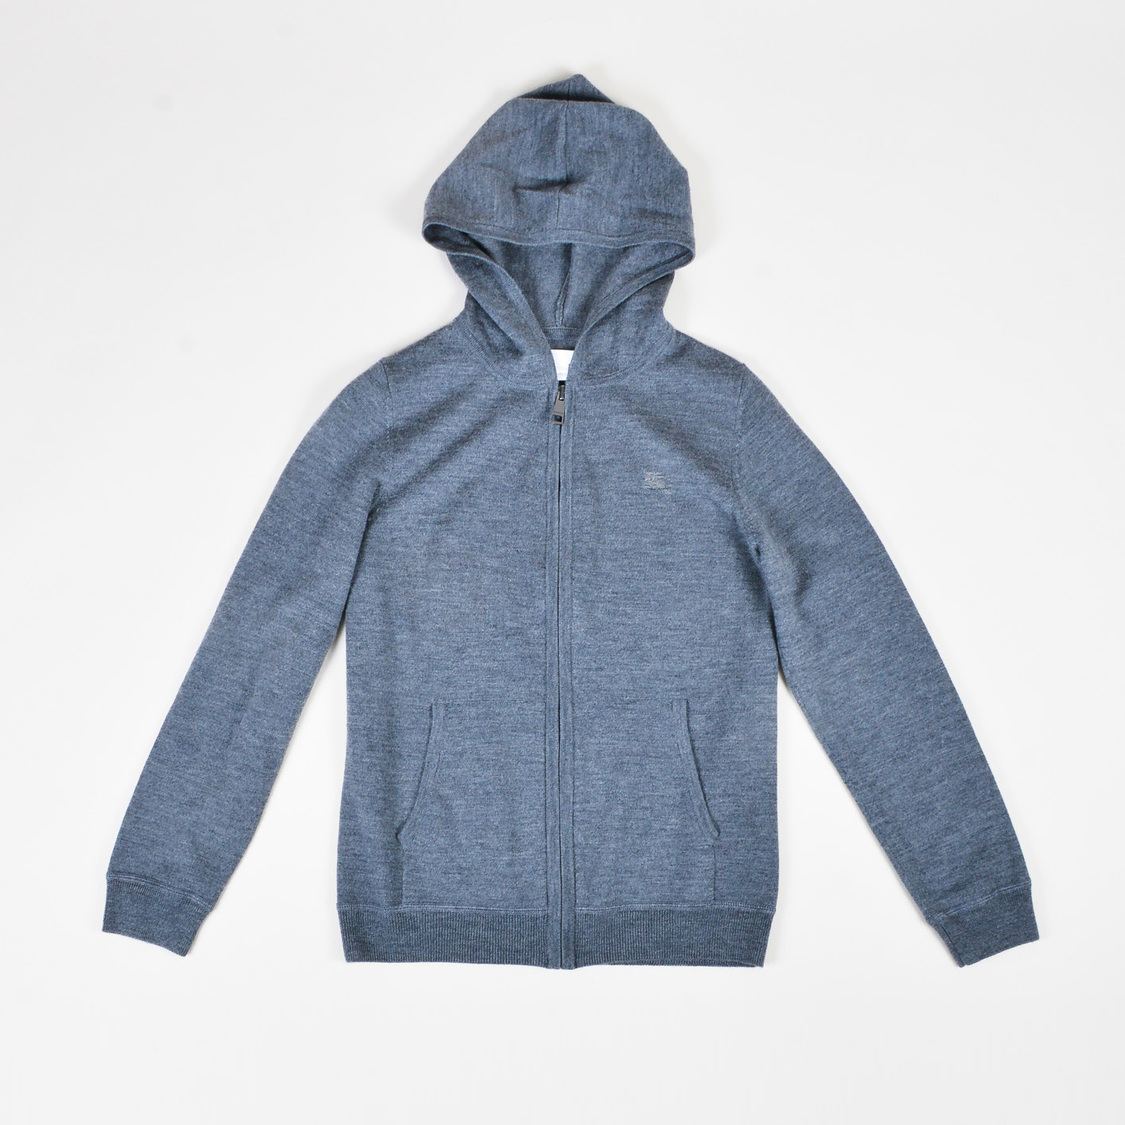 e86df7566b7c KIDS Burberry Children Gray Wool Knit Zip Up Hooded Cardigan Sweater ...